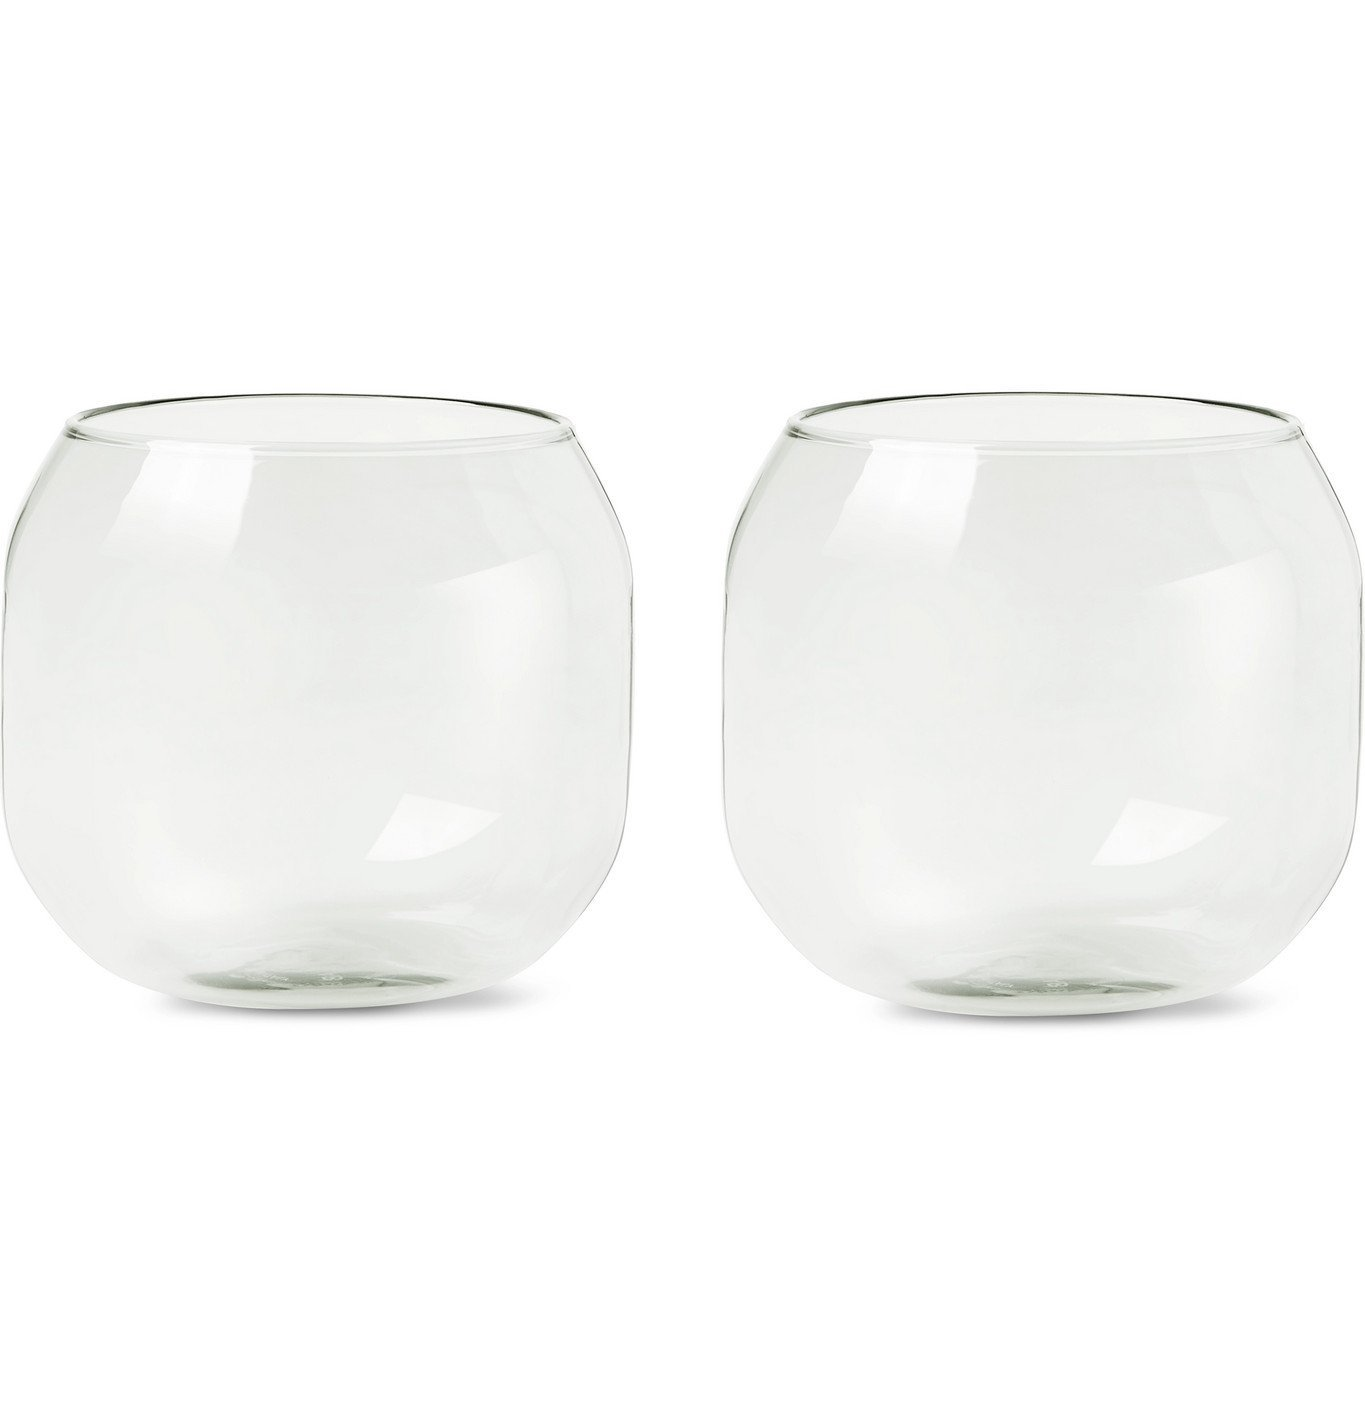 Photo: RD.LAB - Velasca Acqua Set of Two Glasses - Gray